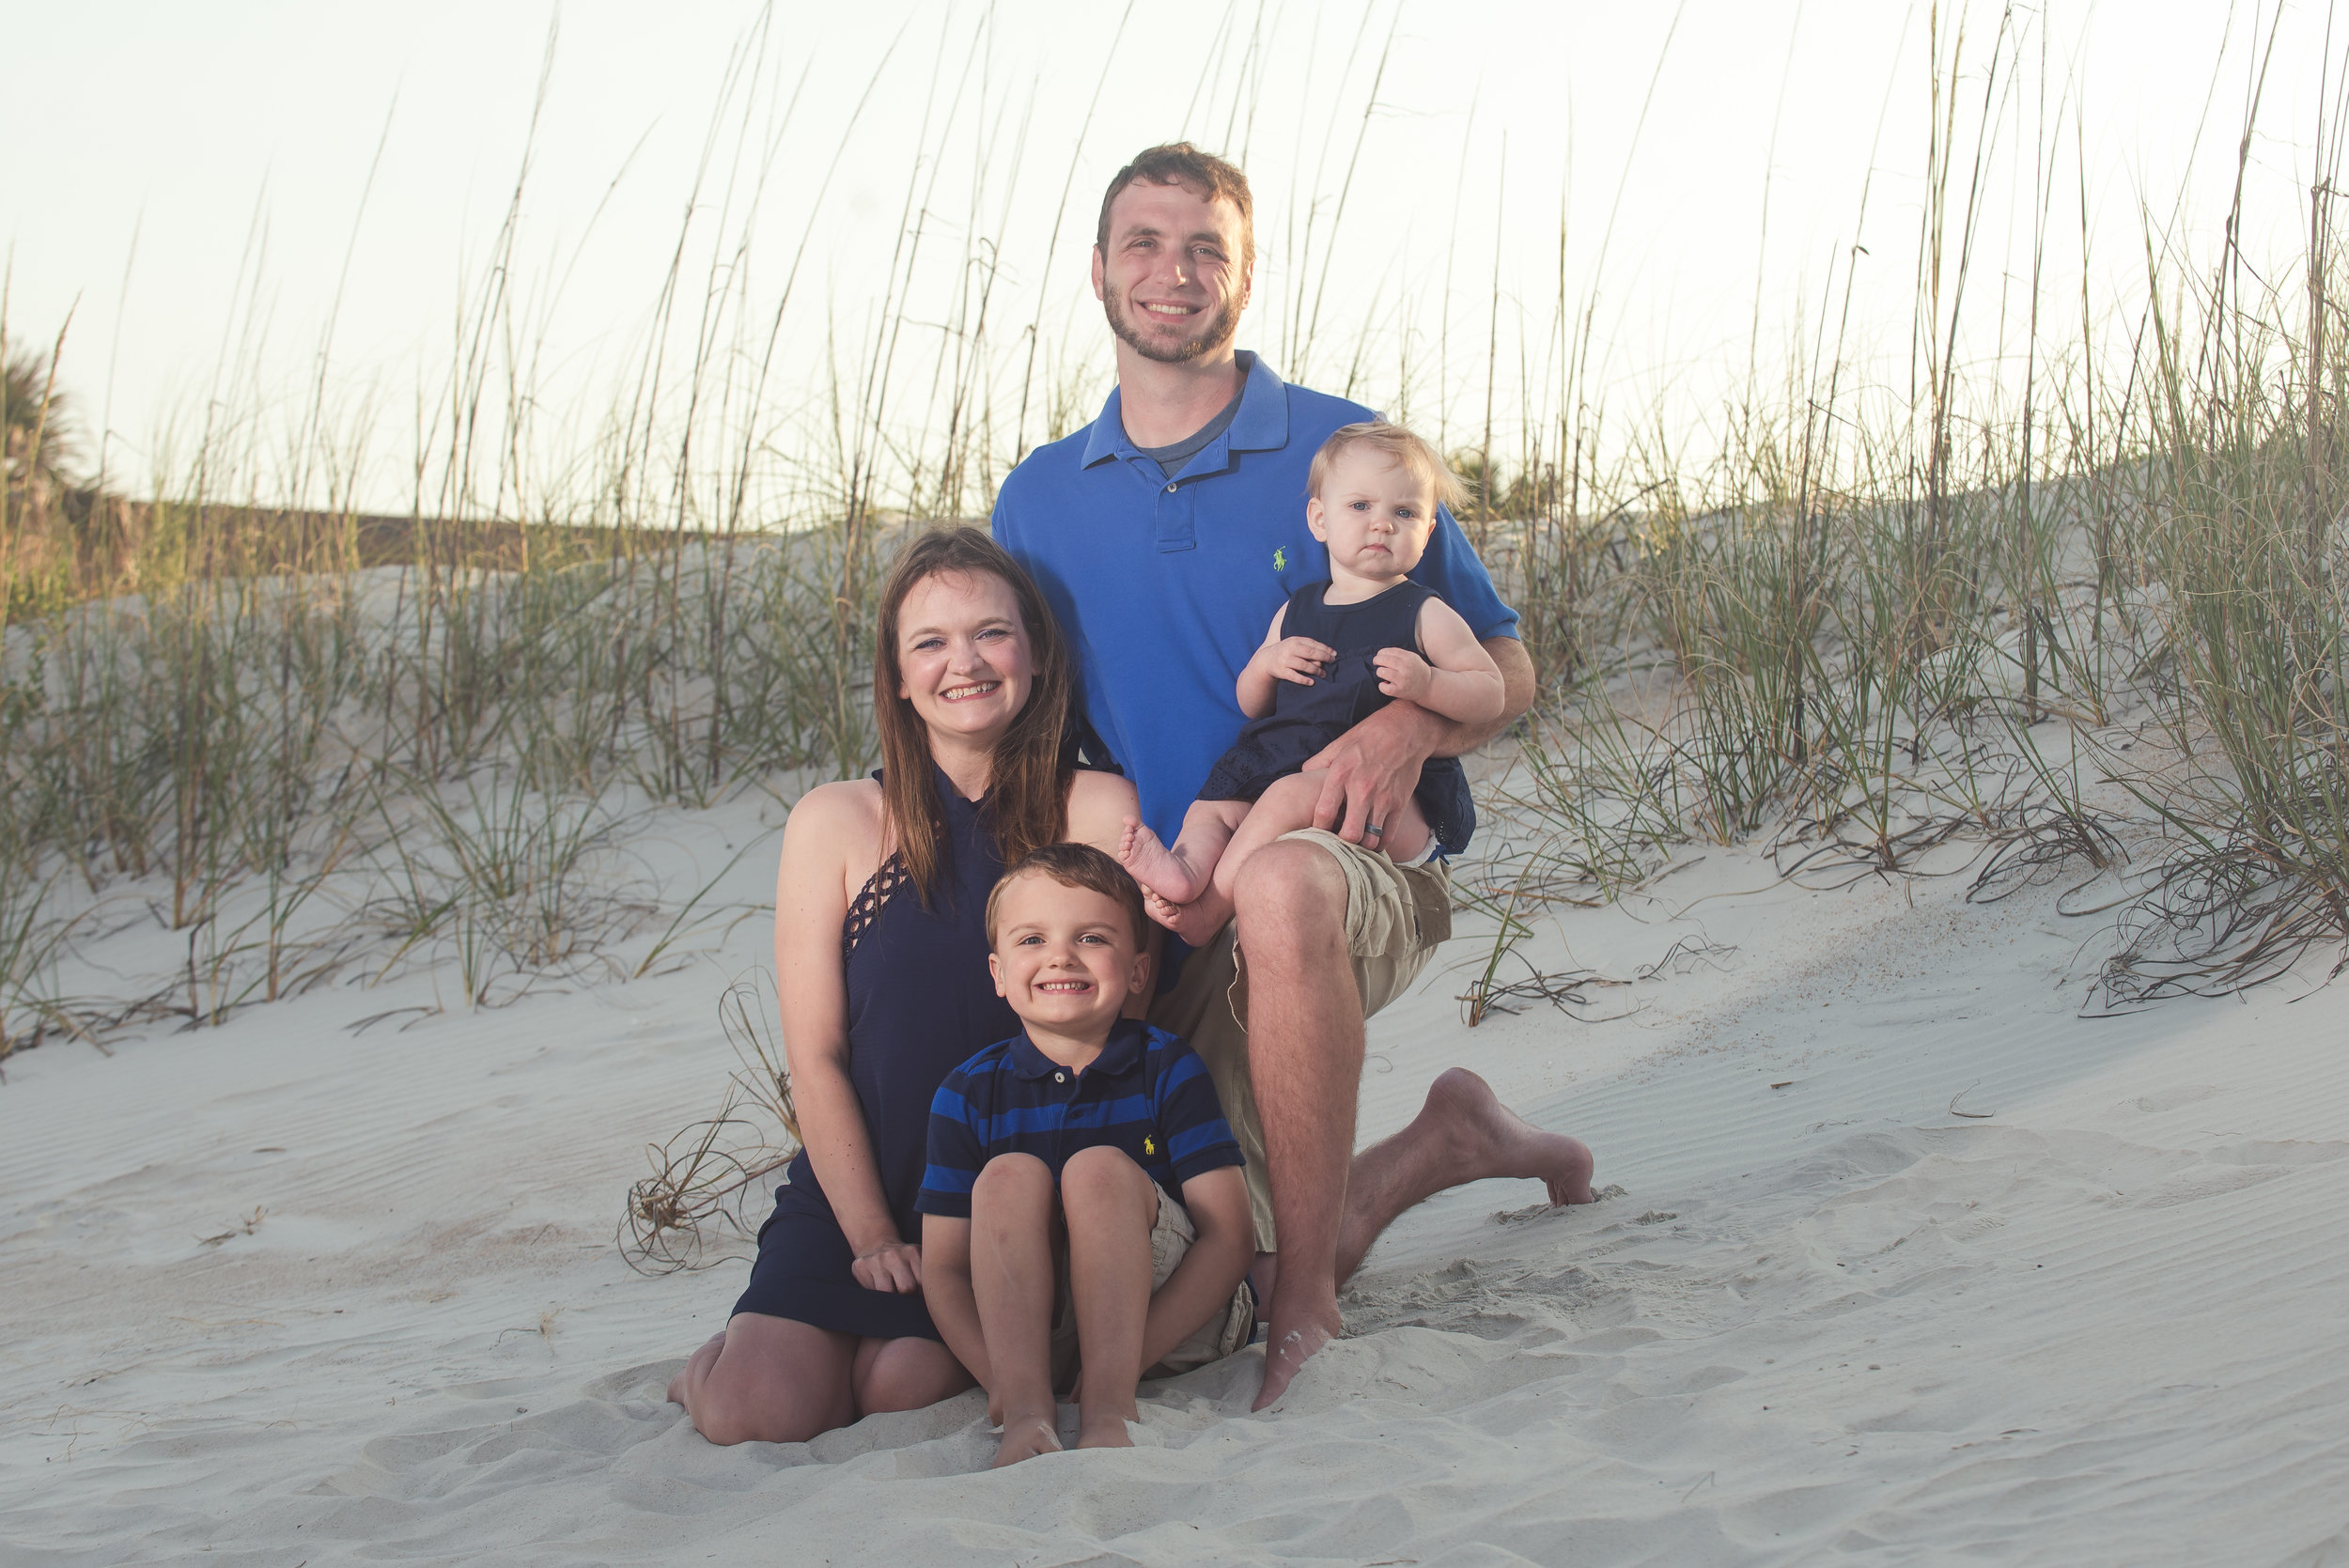 st-augustine-vacation-family-portrait-photographer